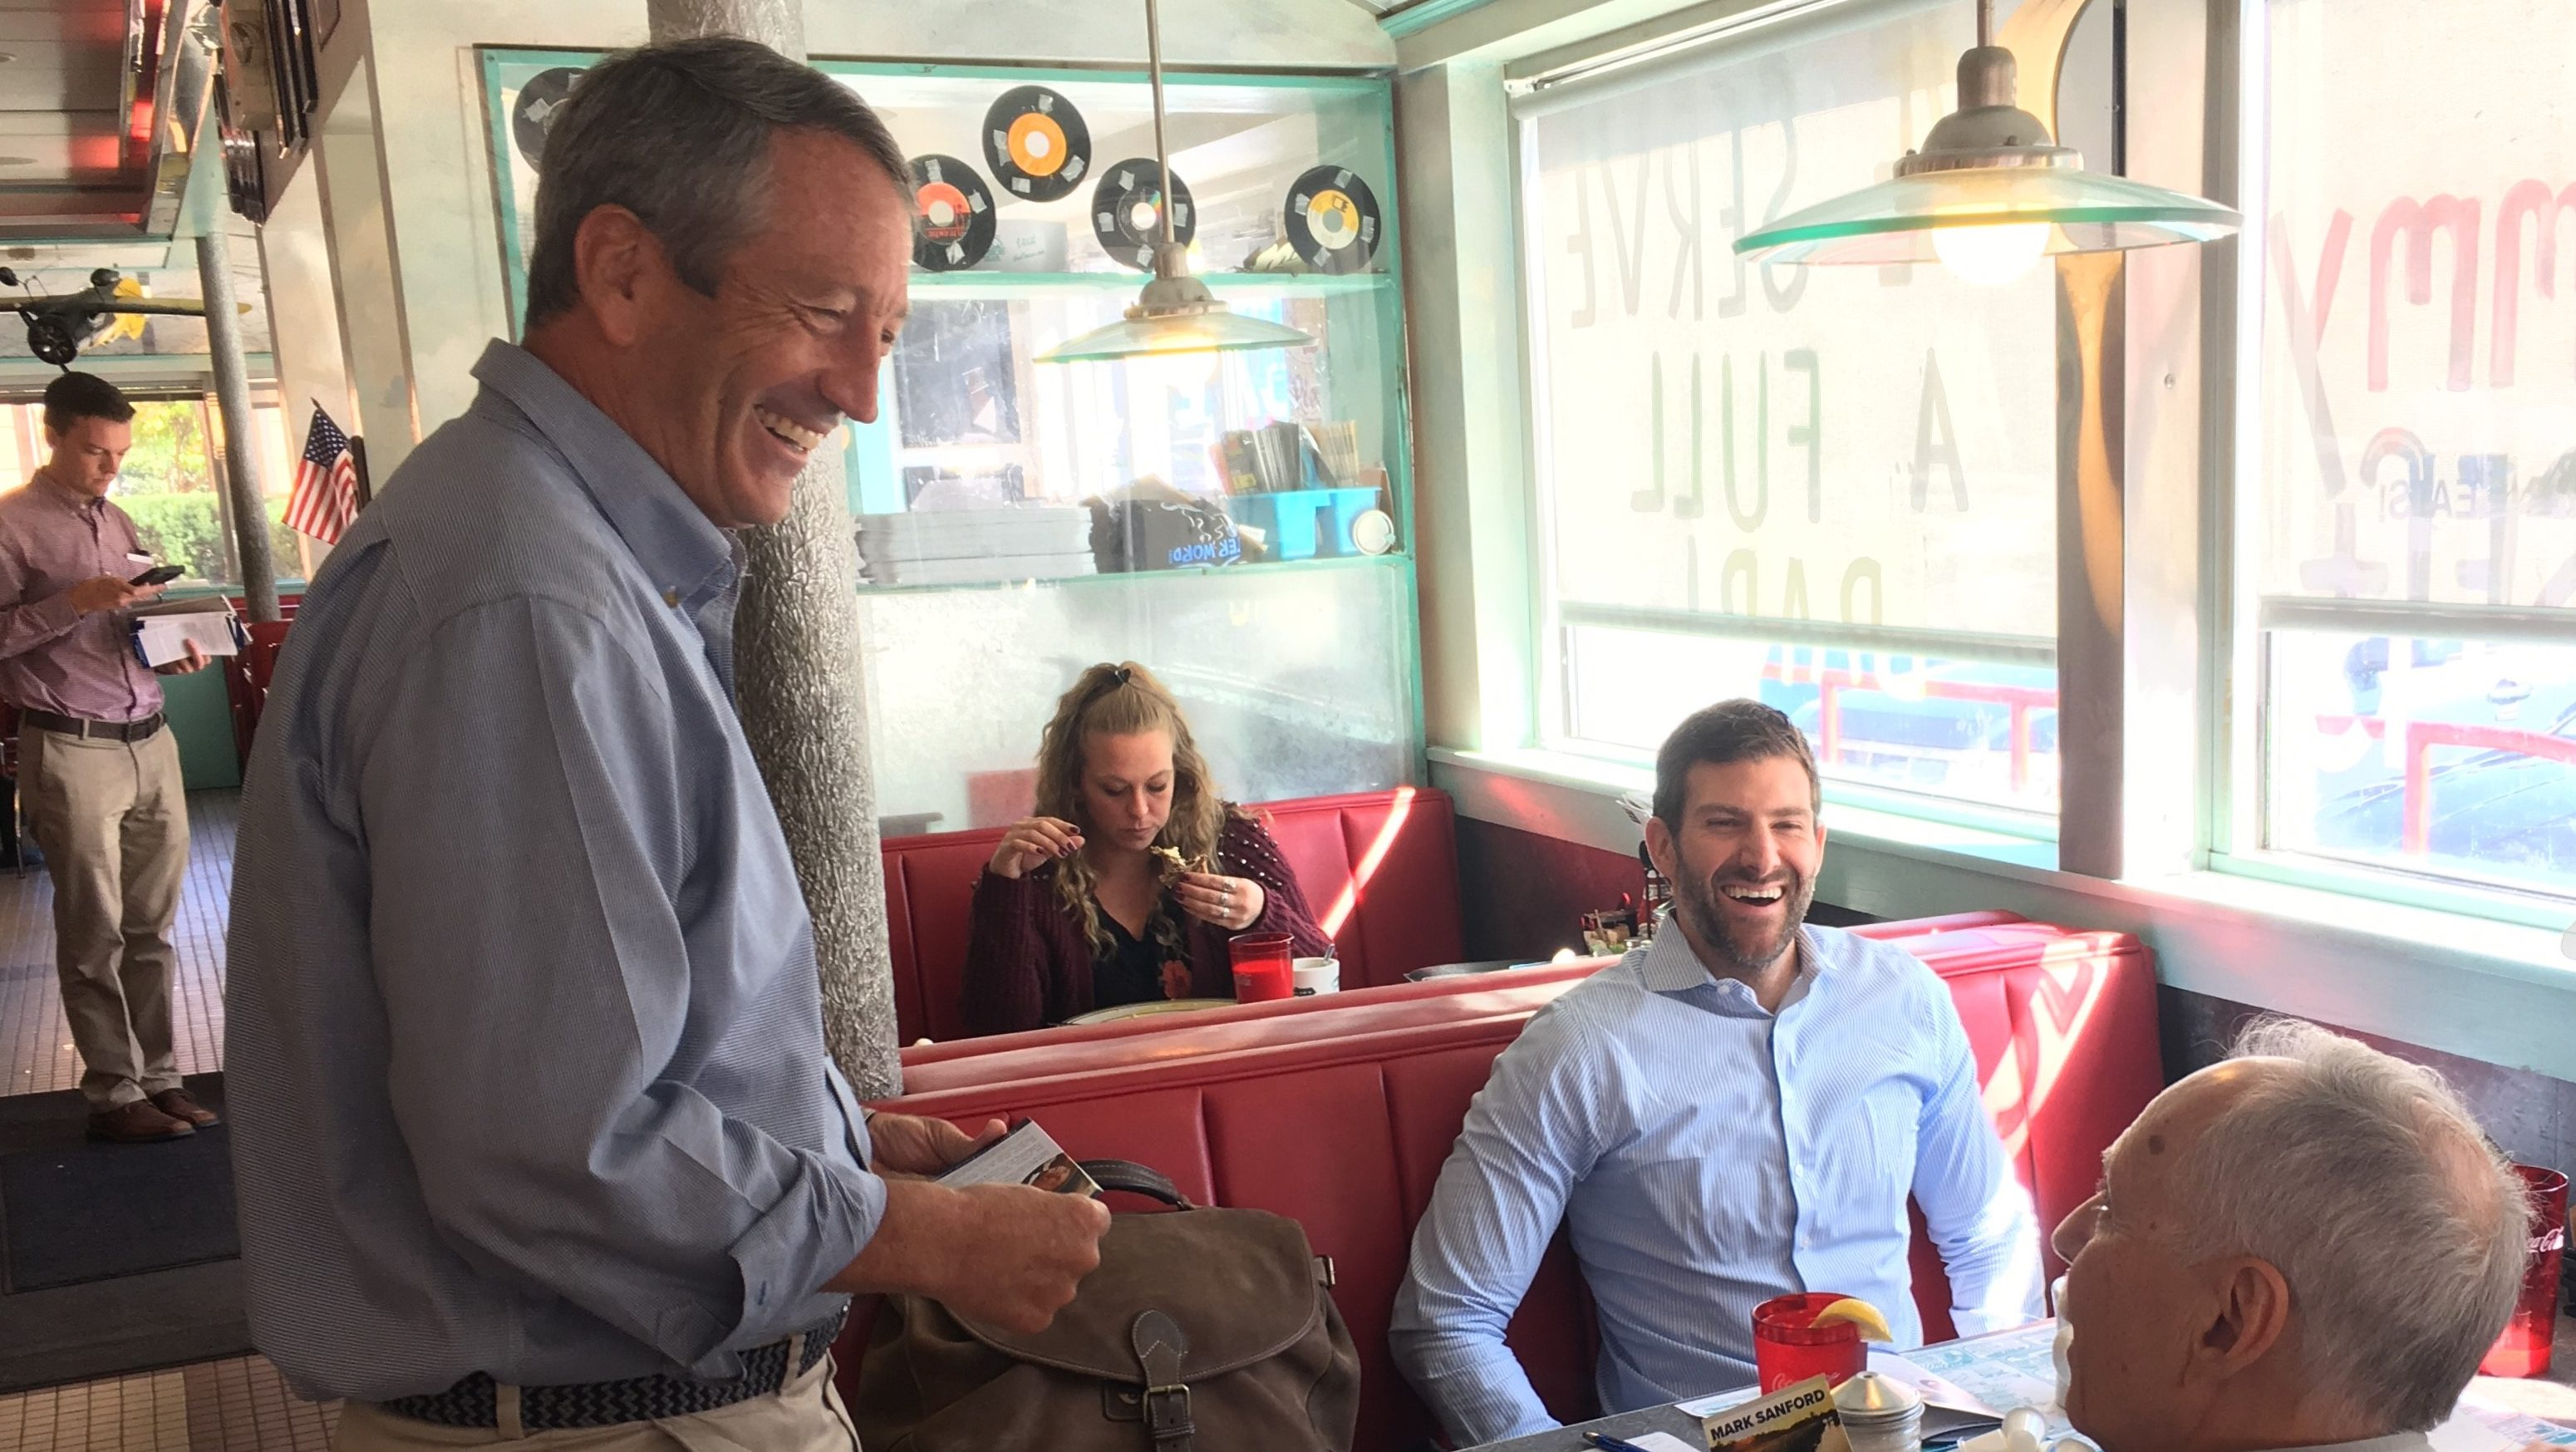 Mark Sanford claims Trump's reelection team is 'scared' about his primary challenge